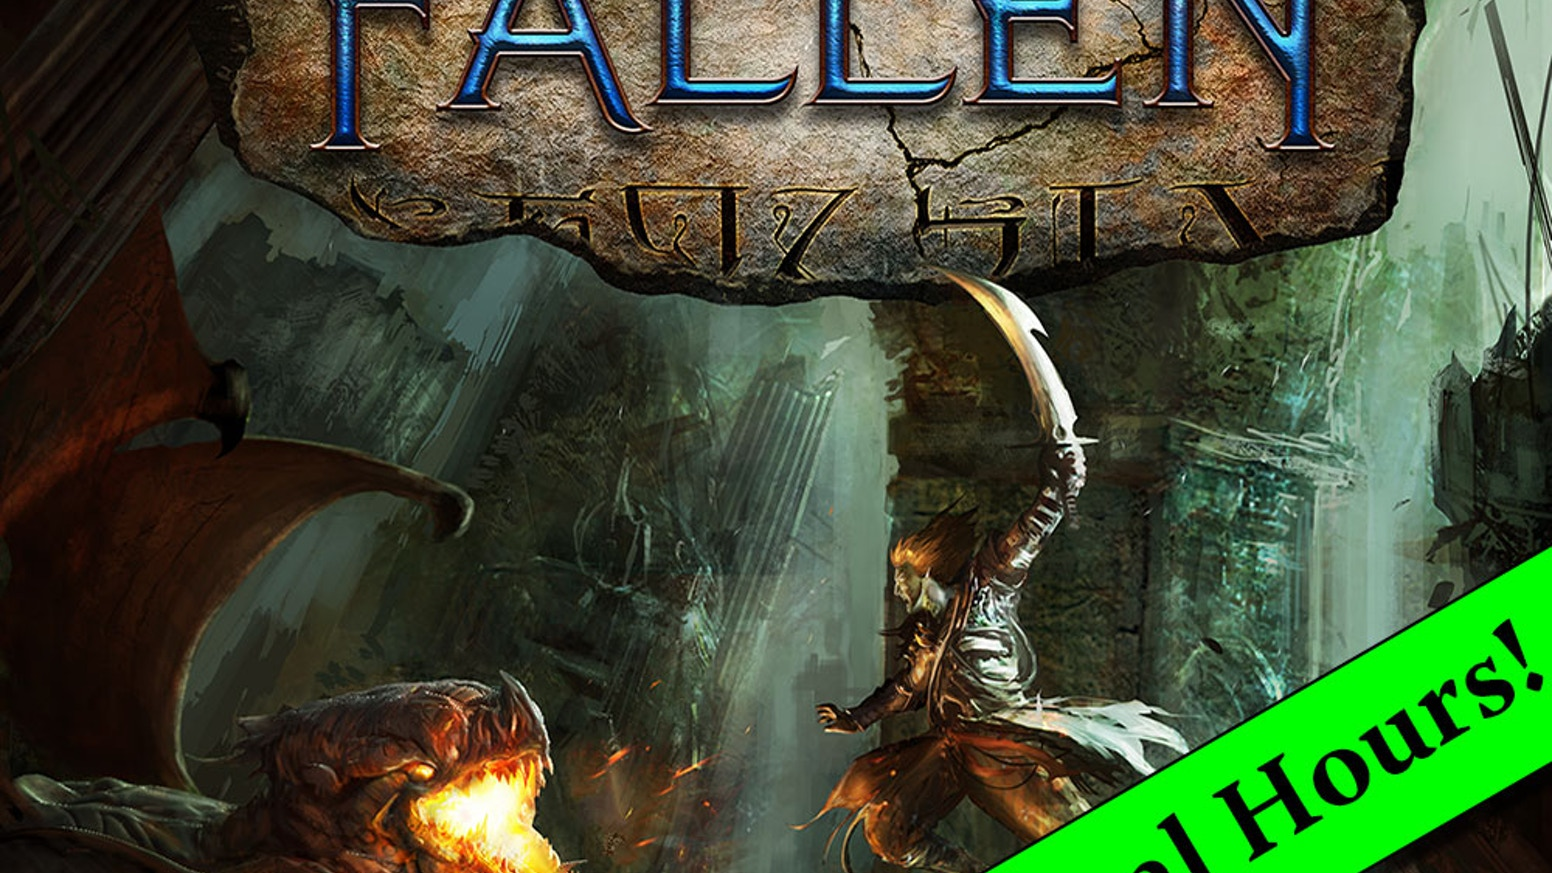 Fallen is a card and dice game that takes dungeon adventuring to a whole new level.